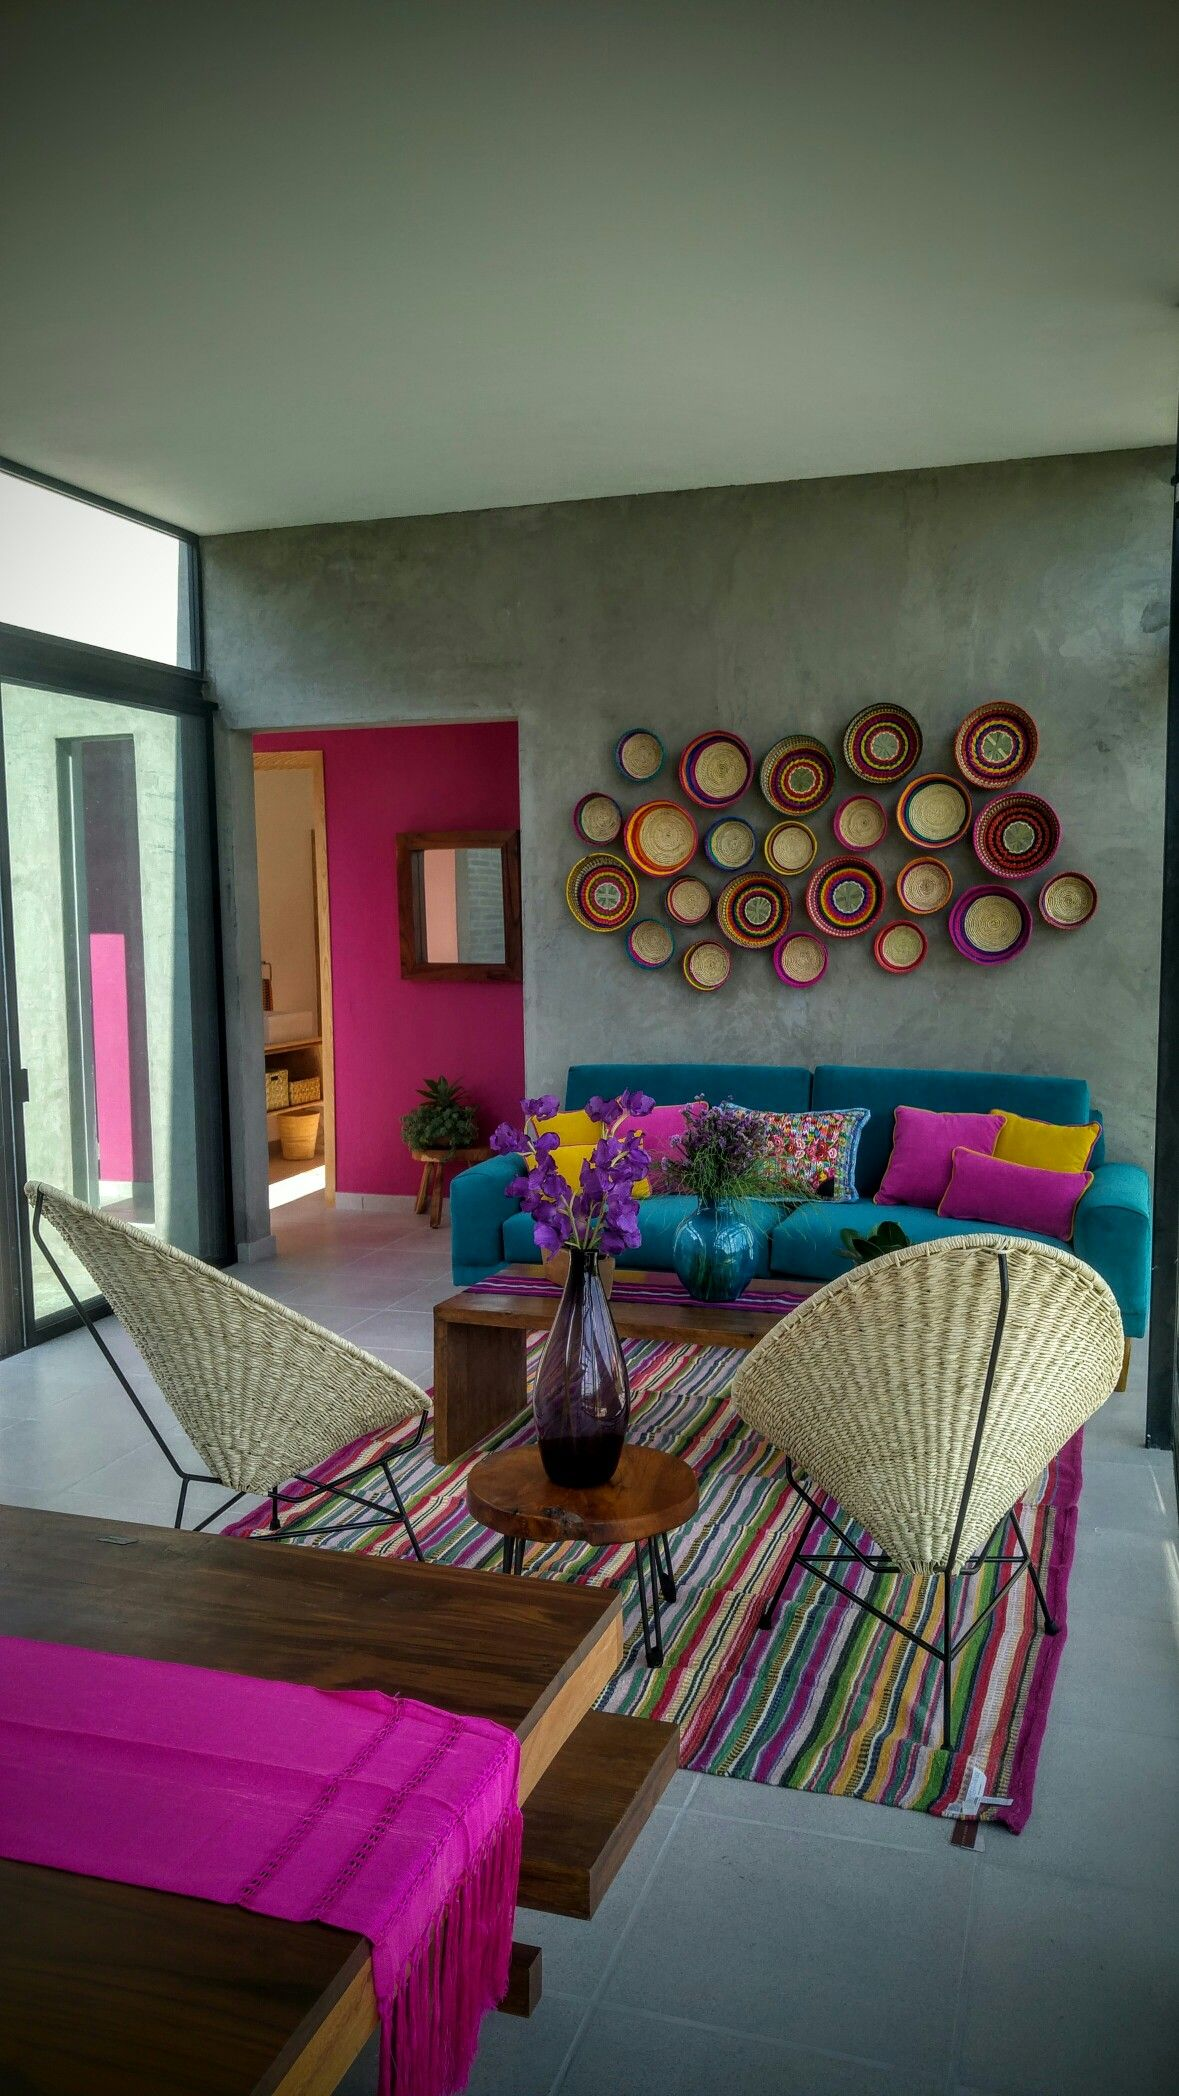 superb Mexican Style Wall Decor Part - 3: Más color e influencias mexicanas en el espacio. #Calux #Tendencia  #Iluminaciónu2026